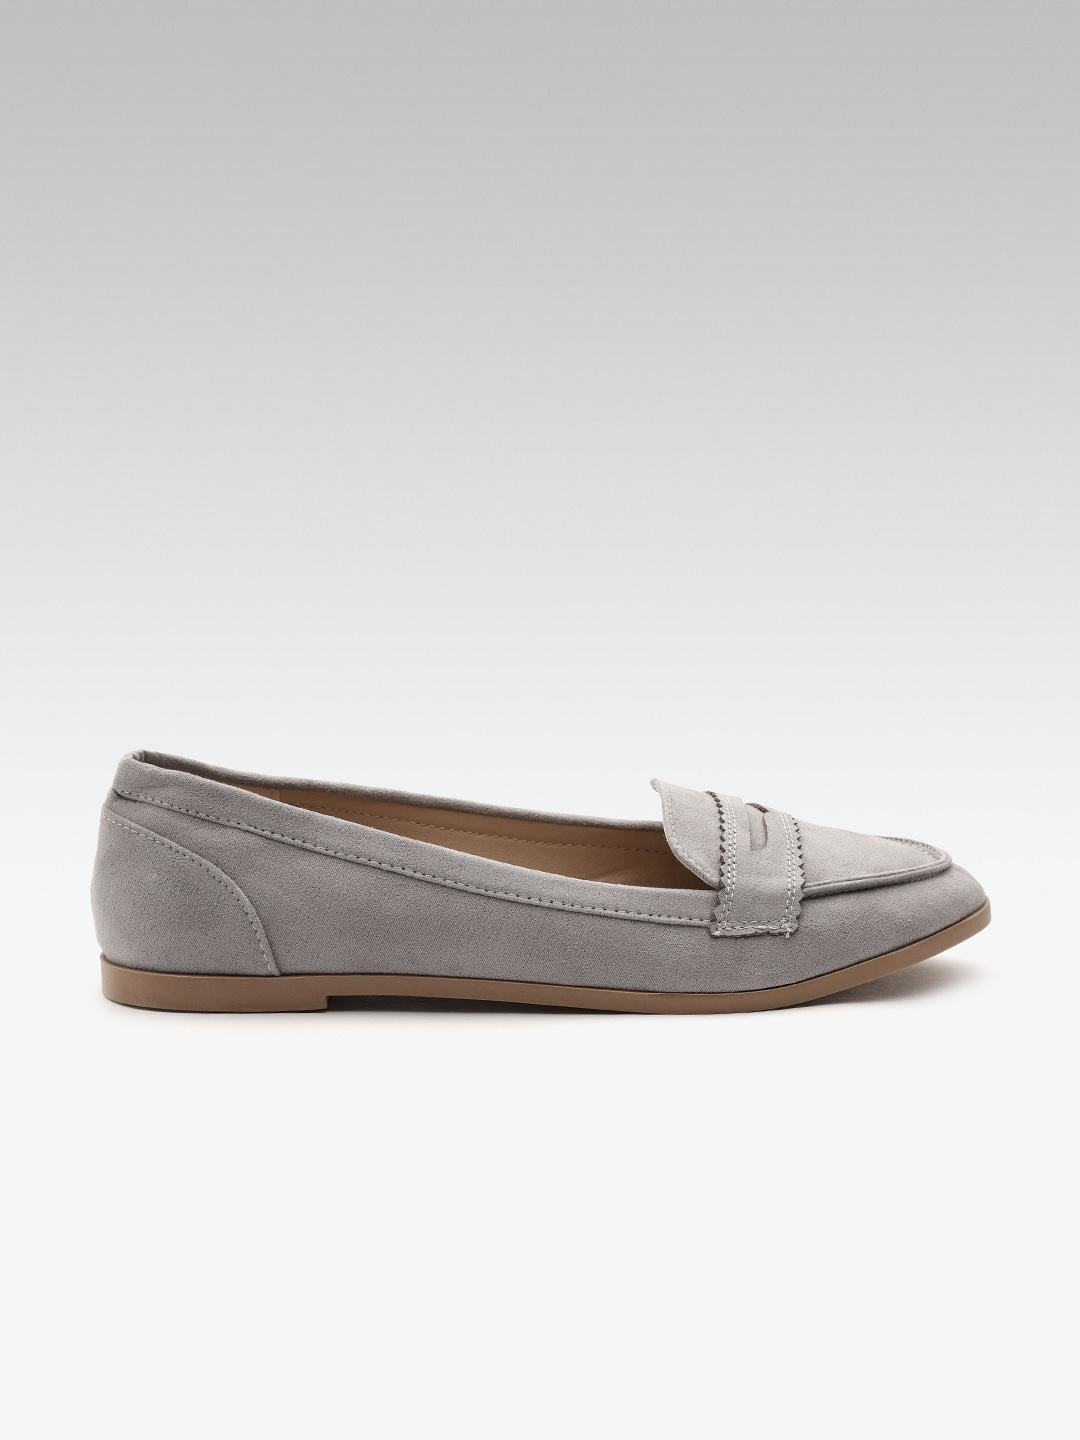 b78af2ee2a8098 Loafers for Women - Buy Ladies Loafers Online in India